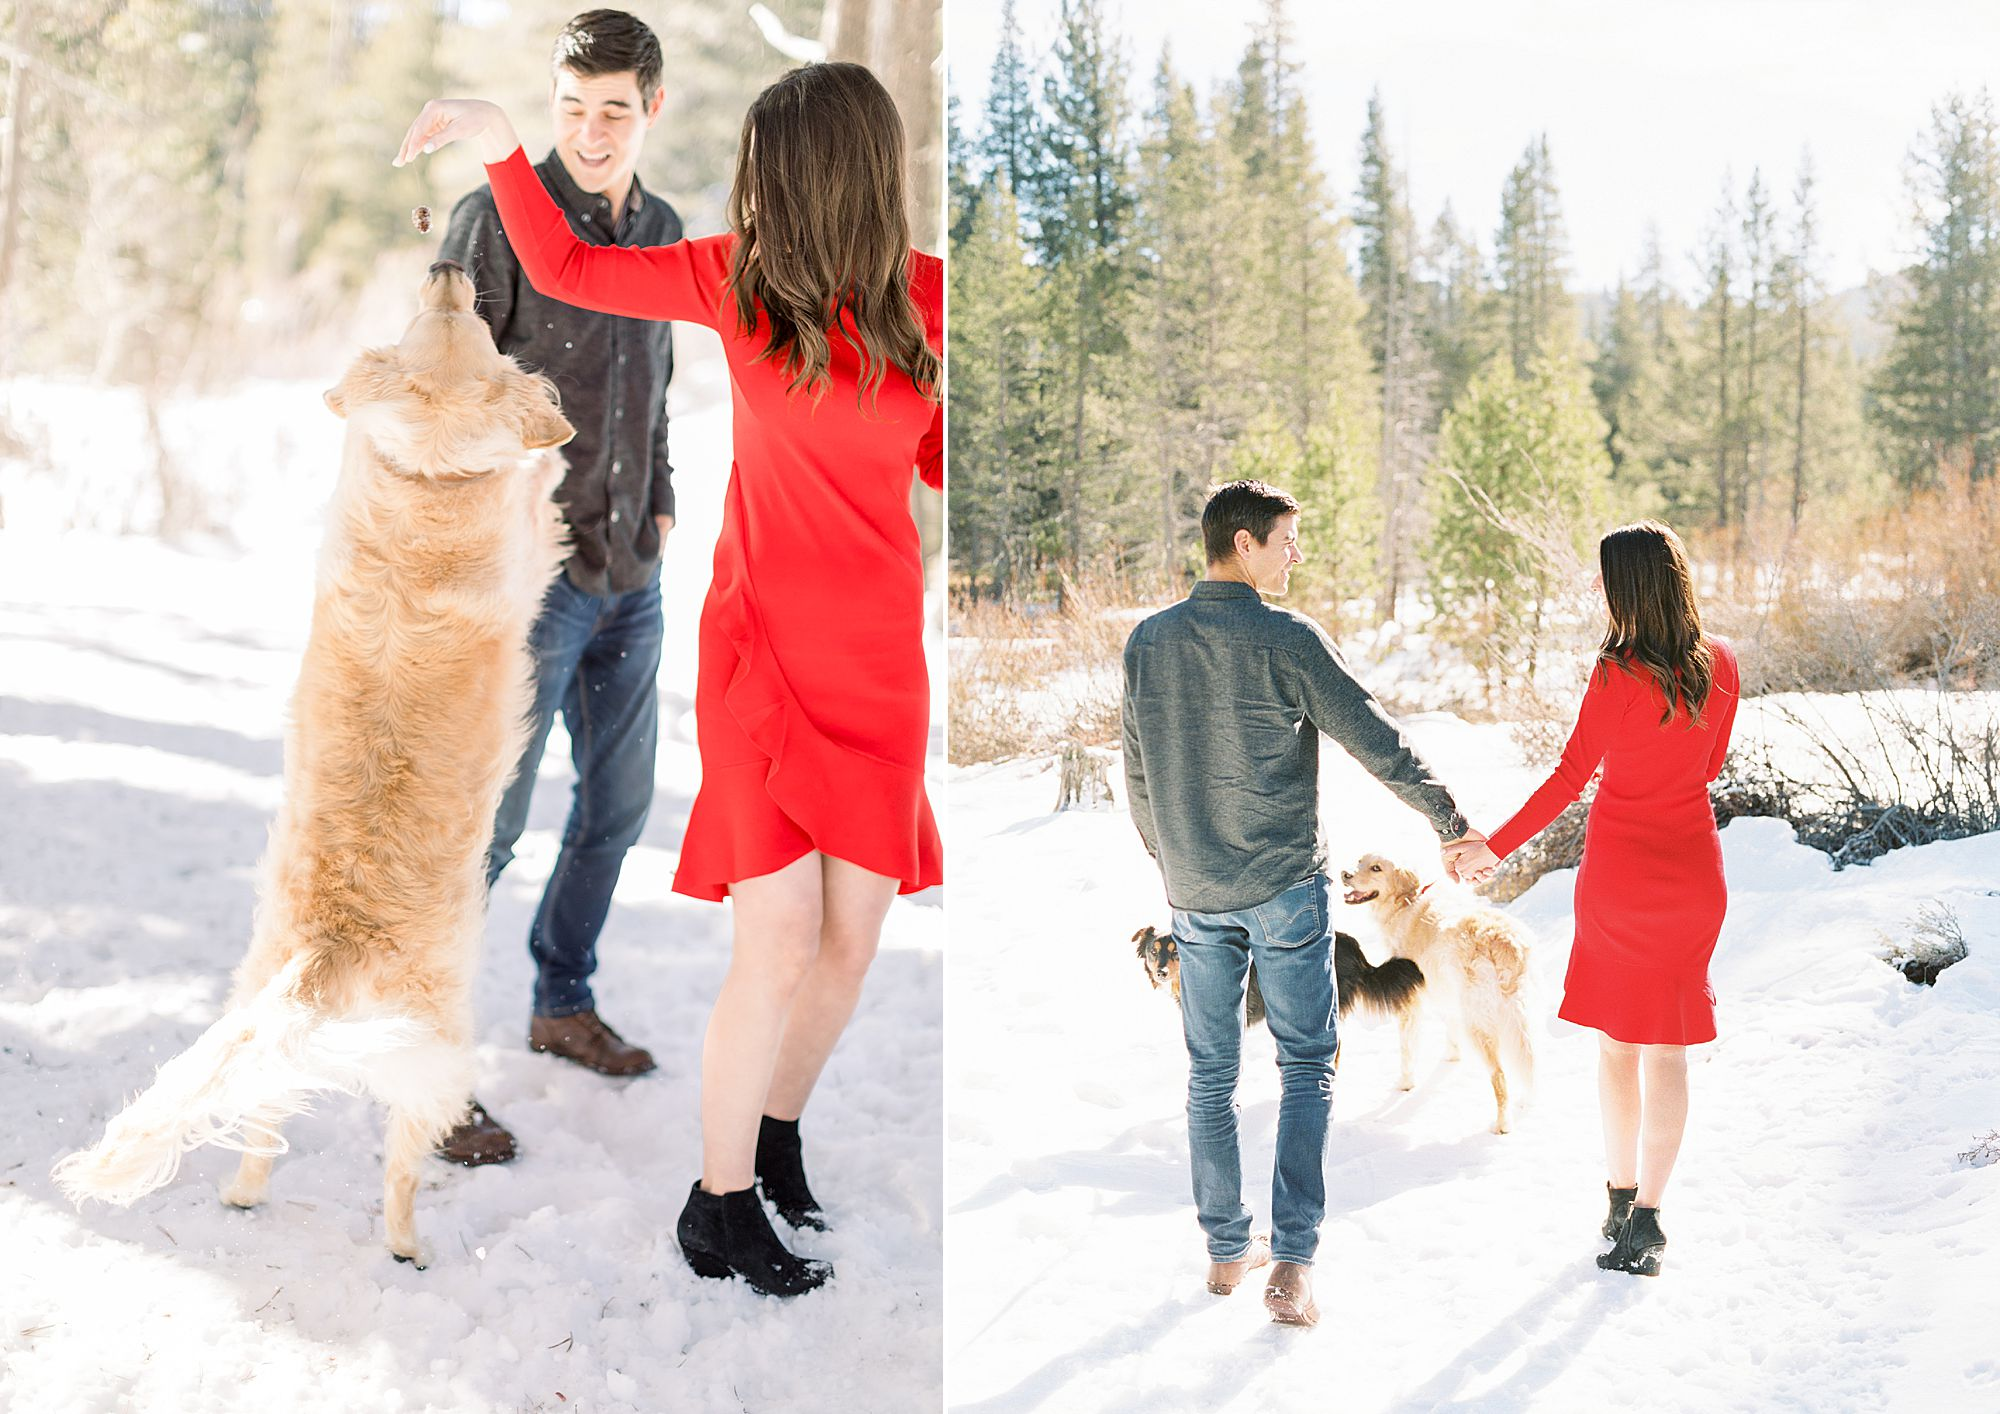 Snowy Tahoe Engagement Session - Alex and Kevin - Ashley Baumgartner - Tahoe Engagement Session - Tahoe Wedding Photographer - Tahoe Engagement Photos - Snow Engagement Photos_0027.jpg